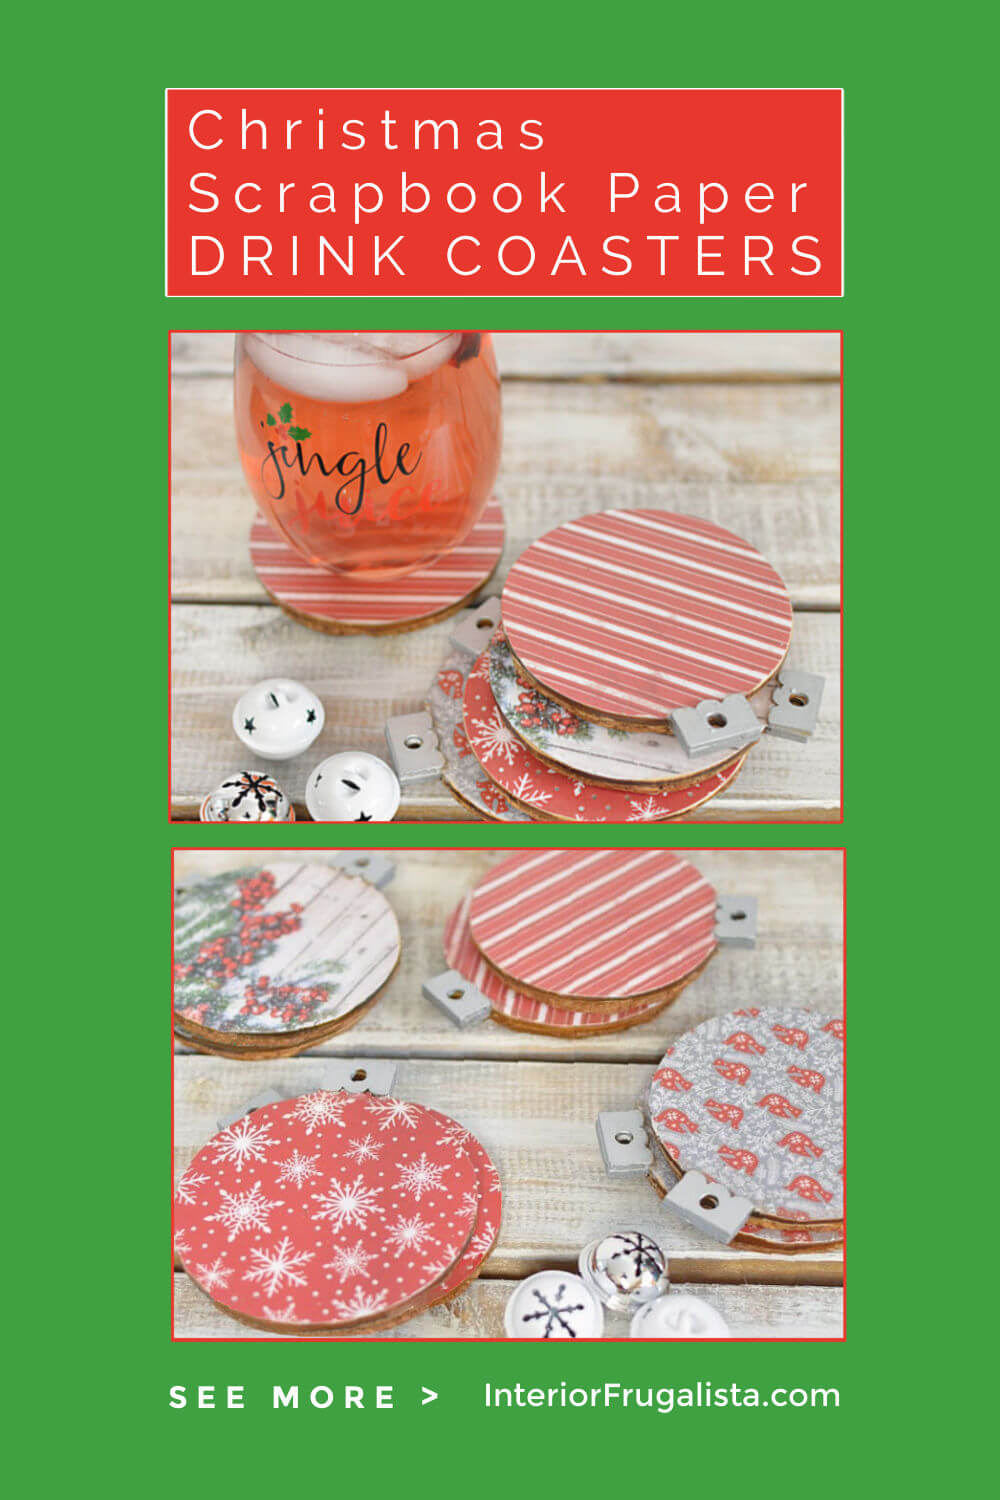 These unique DIY Christmas Scrapbook Paper Drink Coasters in fun ornament shapes are such an easy decoupage idea for holiday decor with inexpensive dollar store wood ornaments and festive scrapbook paper. #diychristmascoasters #diychristmasdecor #christmasideas